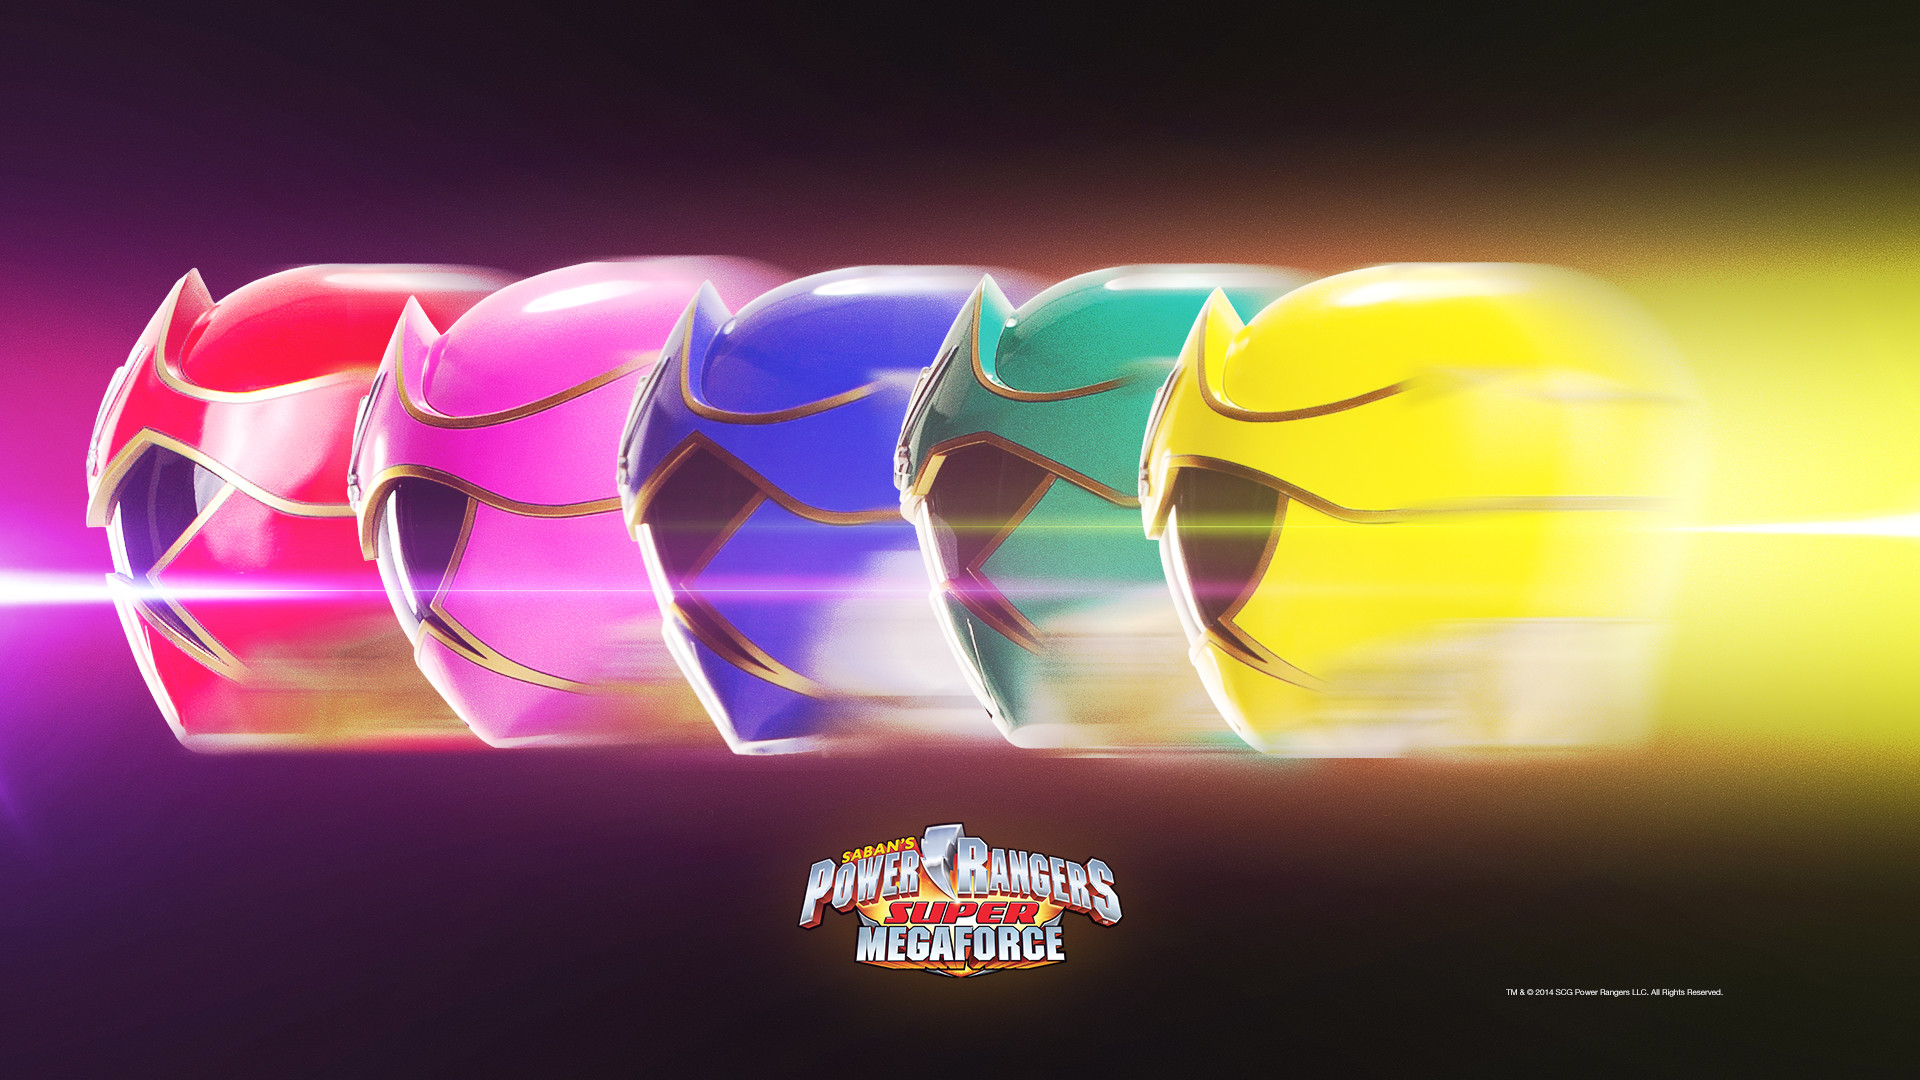 1920x1080 Super Megaforce Streak Desktop Wallpaper